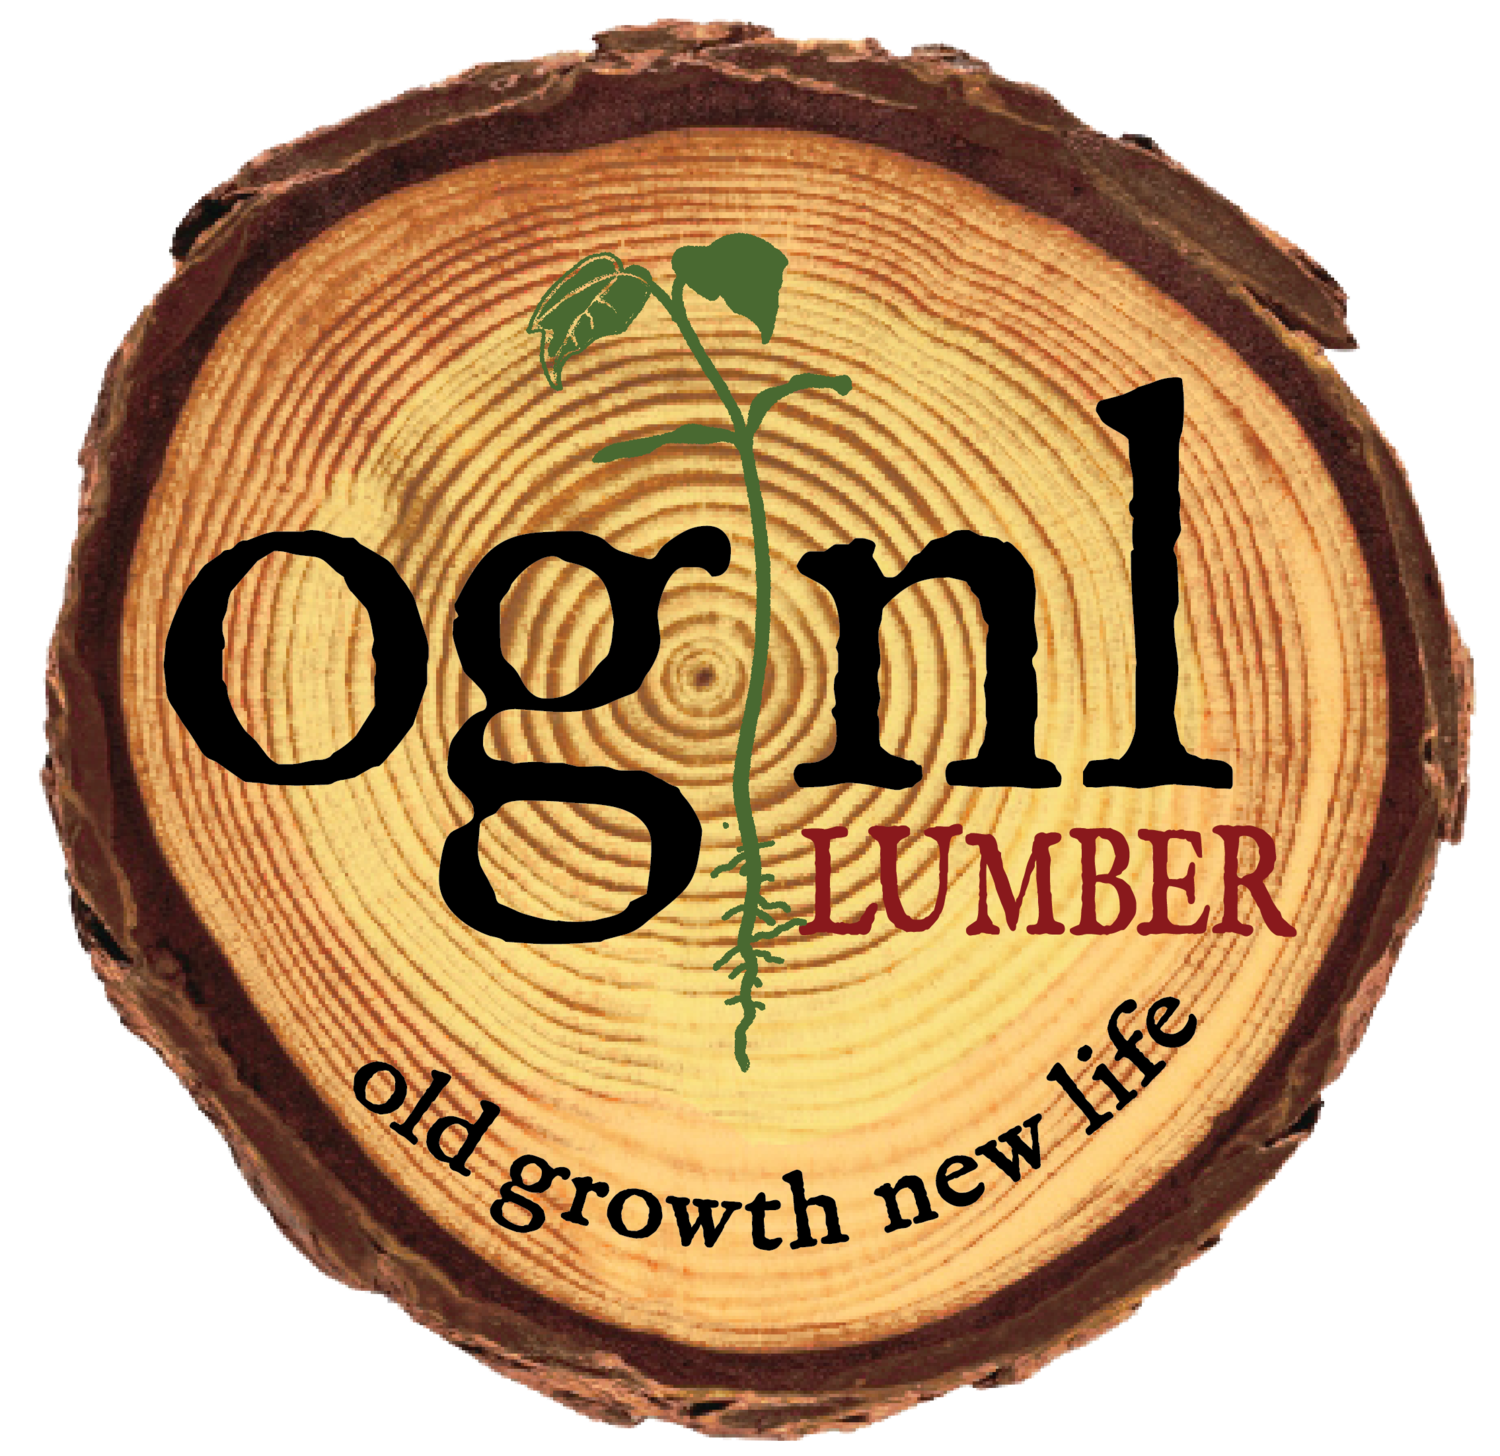 Old Growth New Lumber